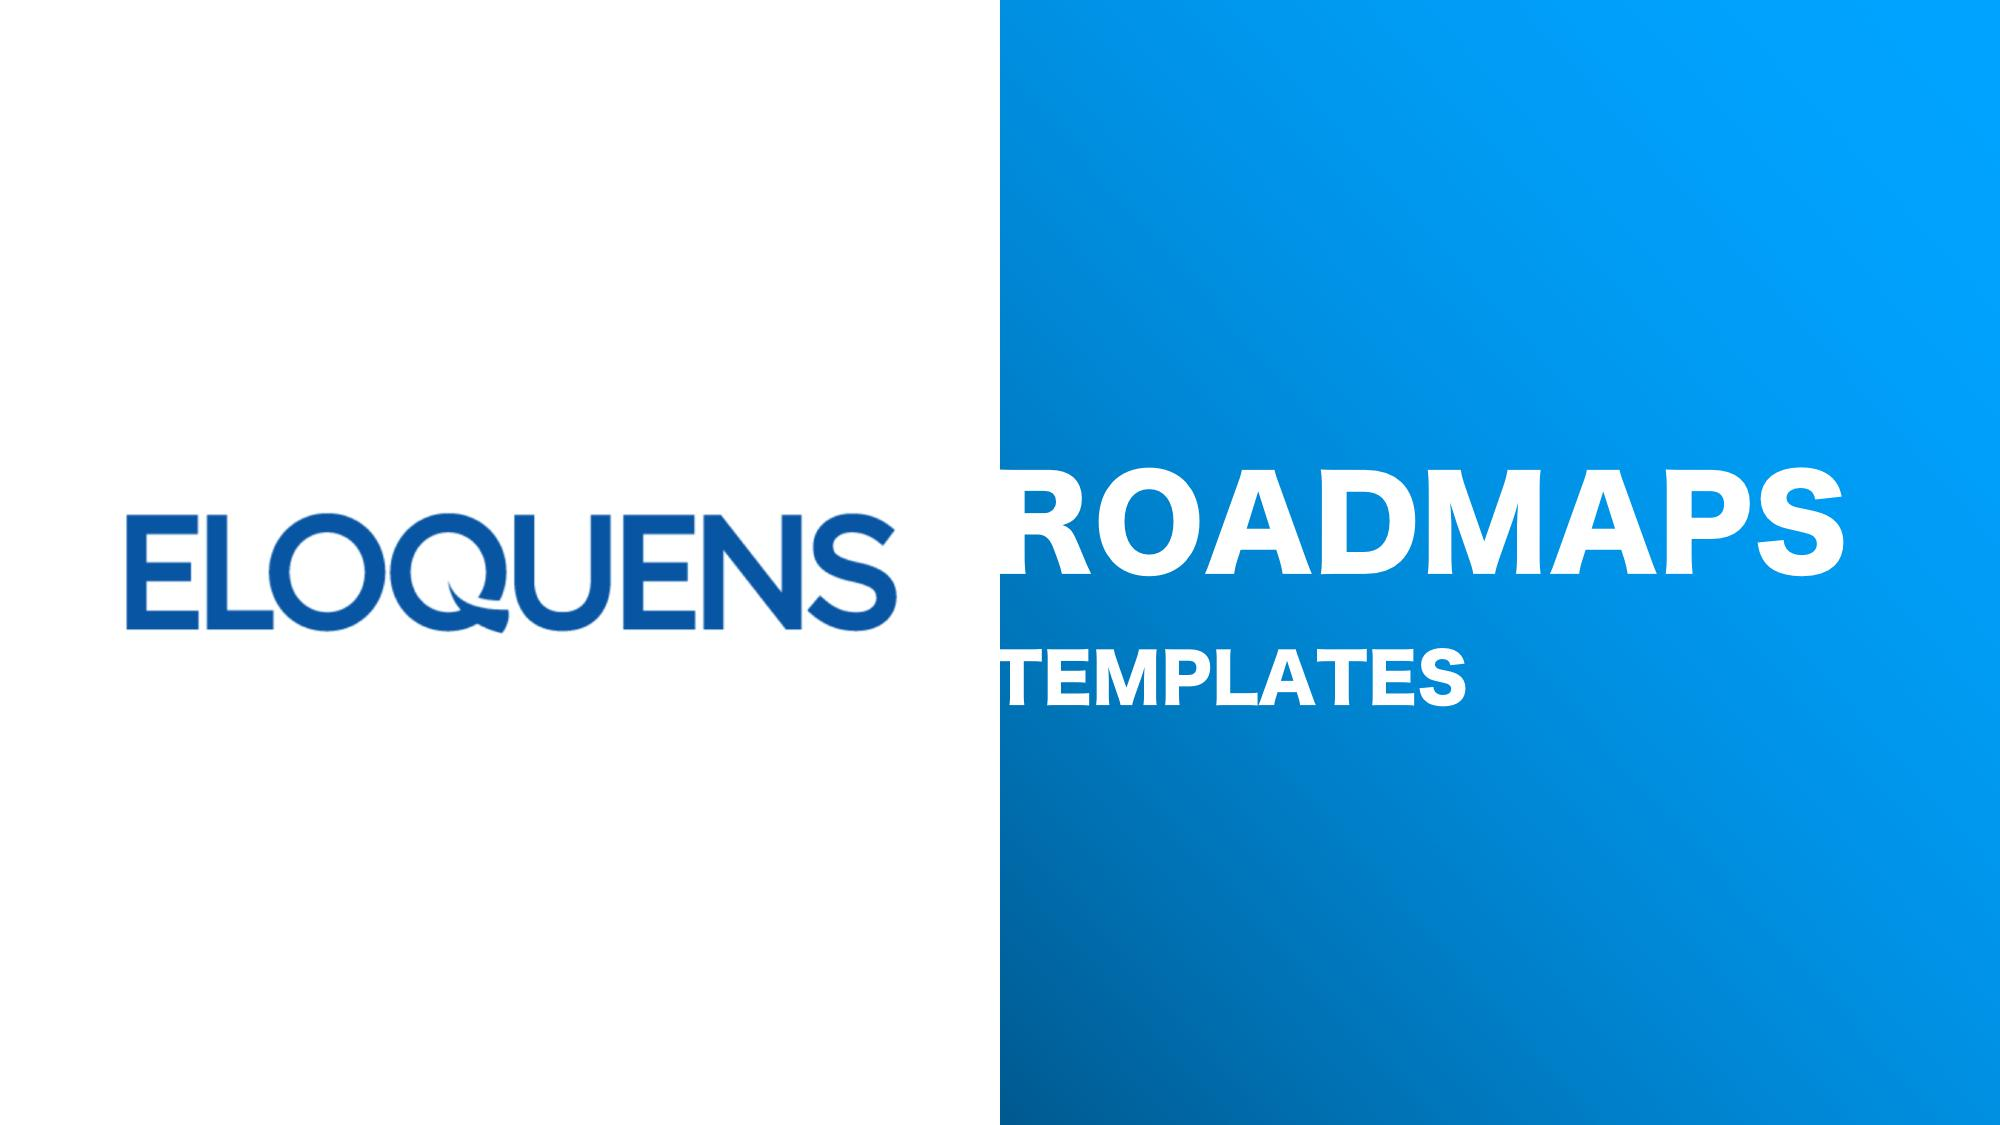 Roadmap Templates in PowerPoint and Excel - Downloads - Eloquens